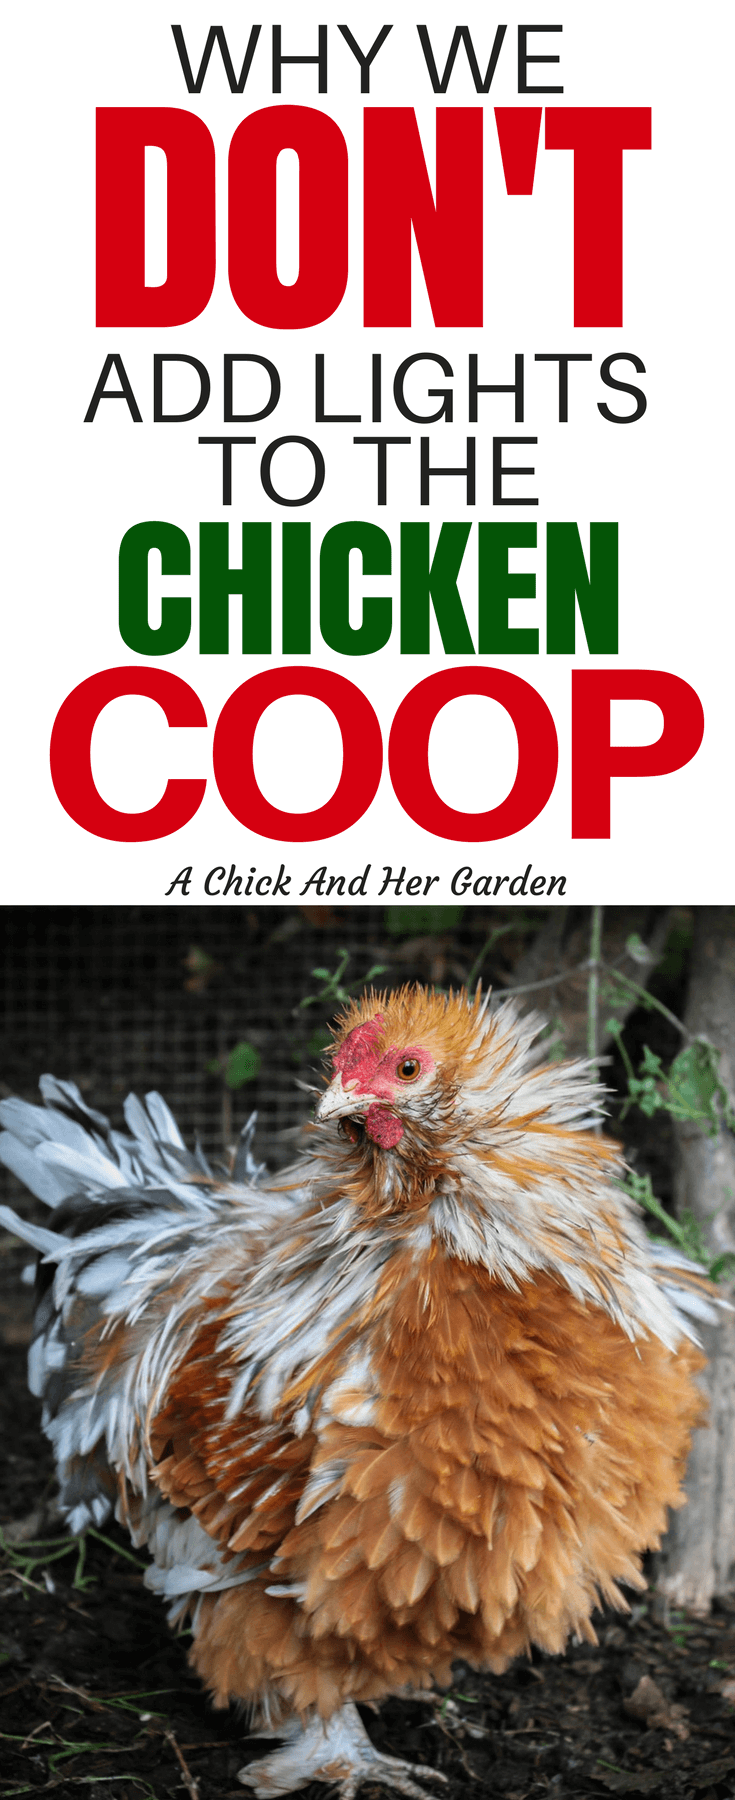 Some people opt to add lights to the chicken coop for various reasons. Increase egg production, heat, and to deter predators. But this is exactly why we don't add lights to the chicken coop! #backyardchickens #homestedin #raisingchickens #chickens #selfsufficiency #achickandhergarden